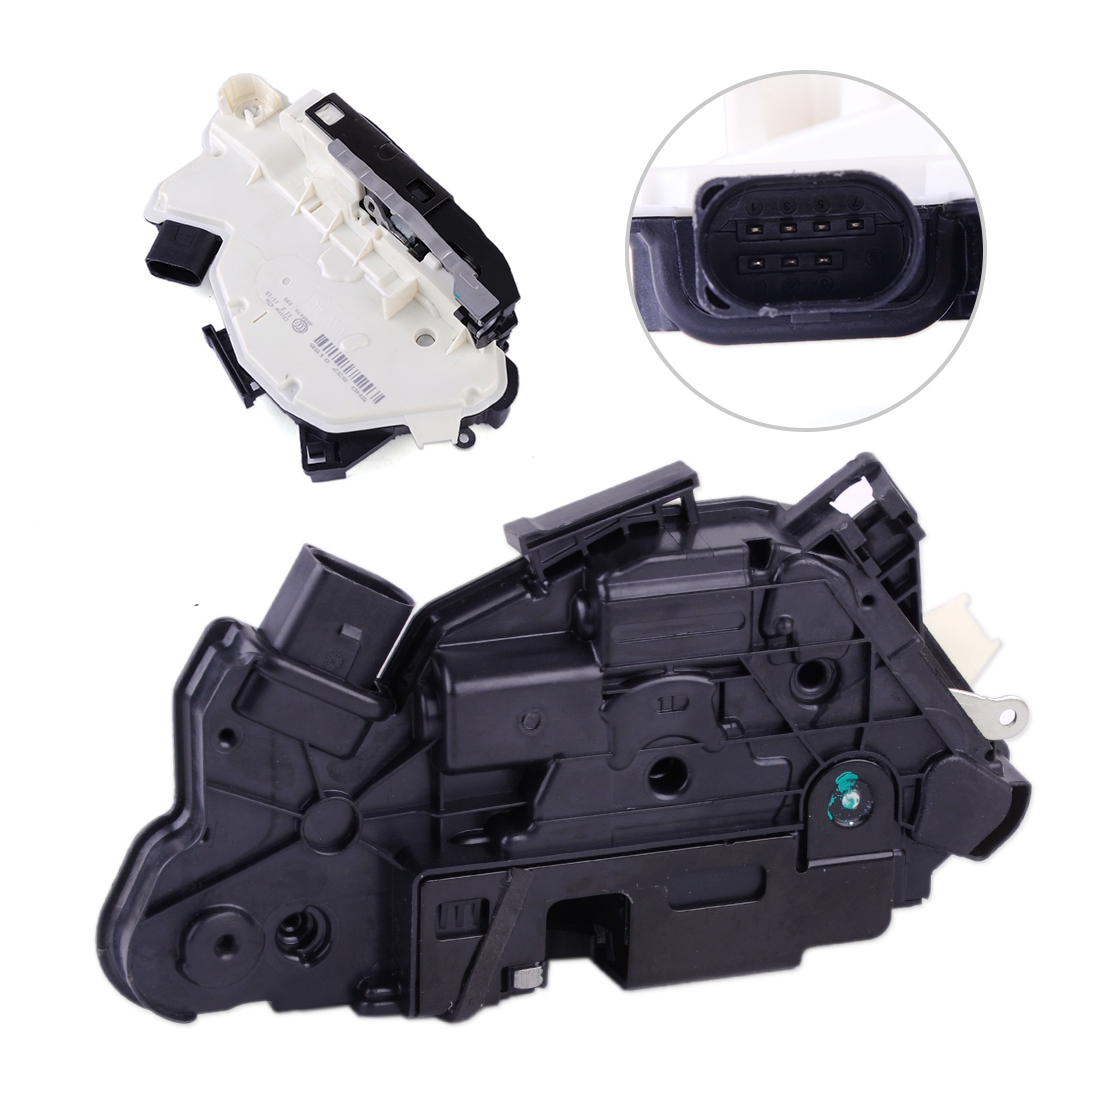 DWCX Car Styling Door Lock Latch Actuator Driver Door Front Left LH 5N1 837 015 C Fit for VW Tiguan CC Scirocco black door lock latch actuator driver front side left lh for vw jetta golf beetle easy to install